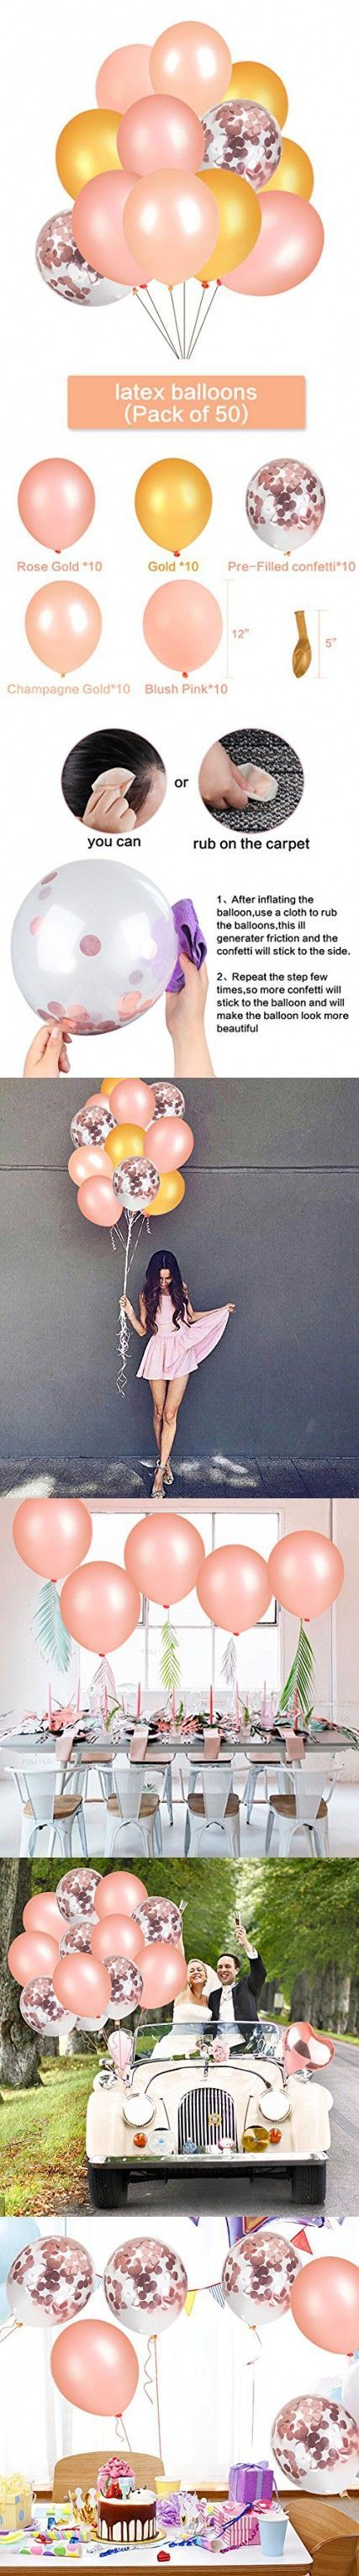 YOUTH UNION 50Pcs Confetti Balloons - 12 Inch Gold & Rose Gold & Champagne Gold Color Latex Party Balloons Great for Wedding Hawaii Graduation Birthda...